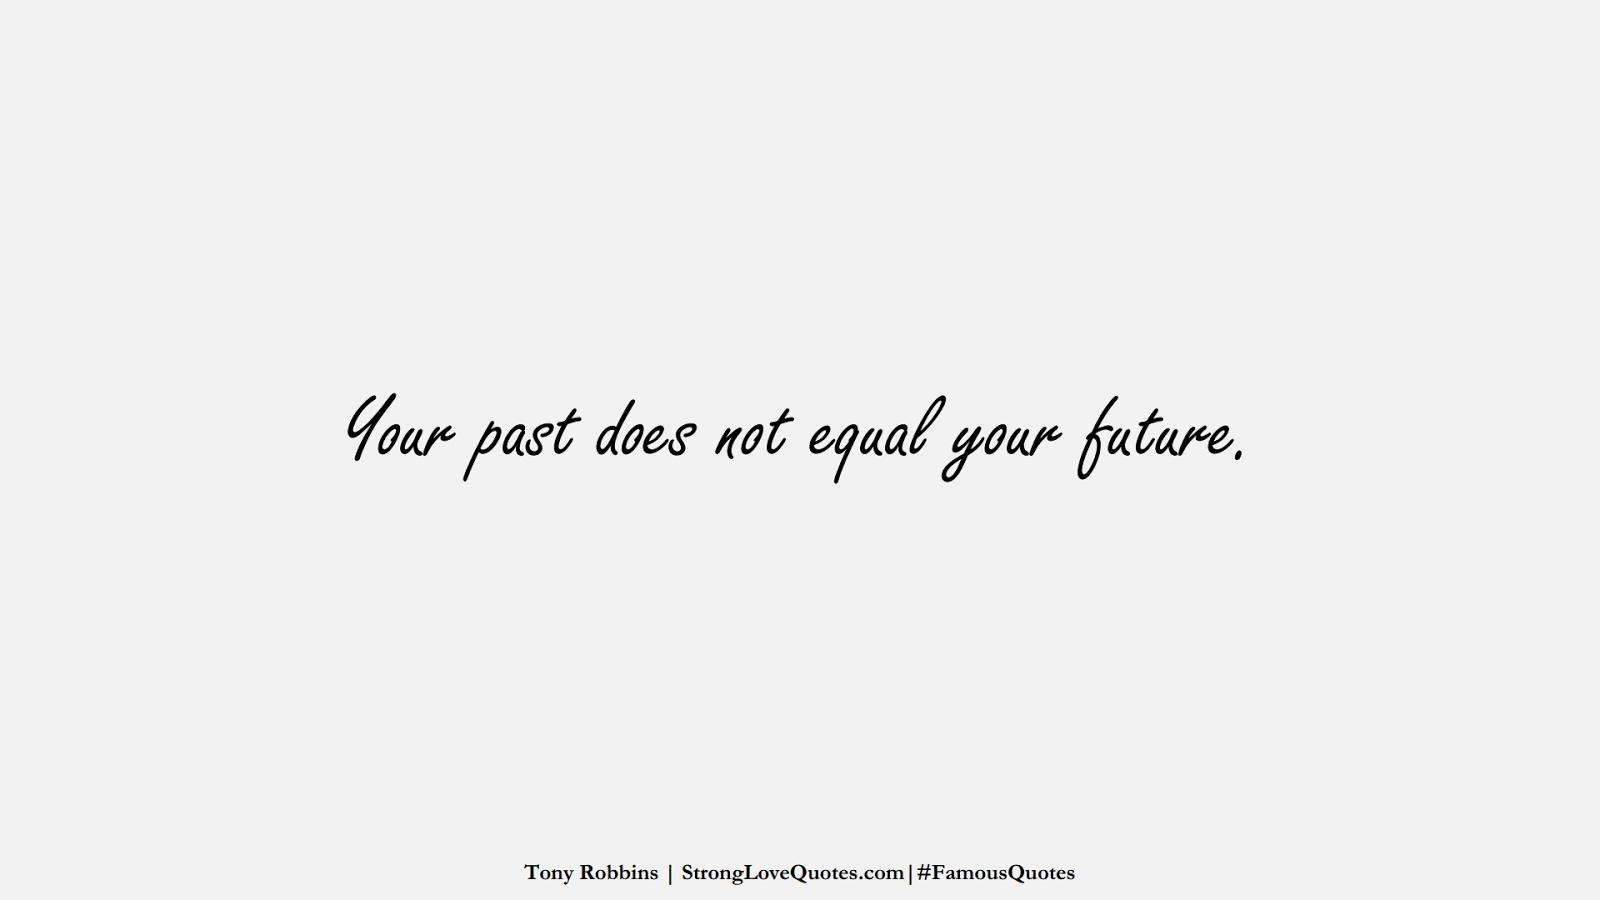 Your past does not equal your future. (Tony Robbins);  #FamousQuotes